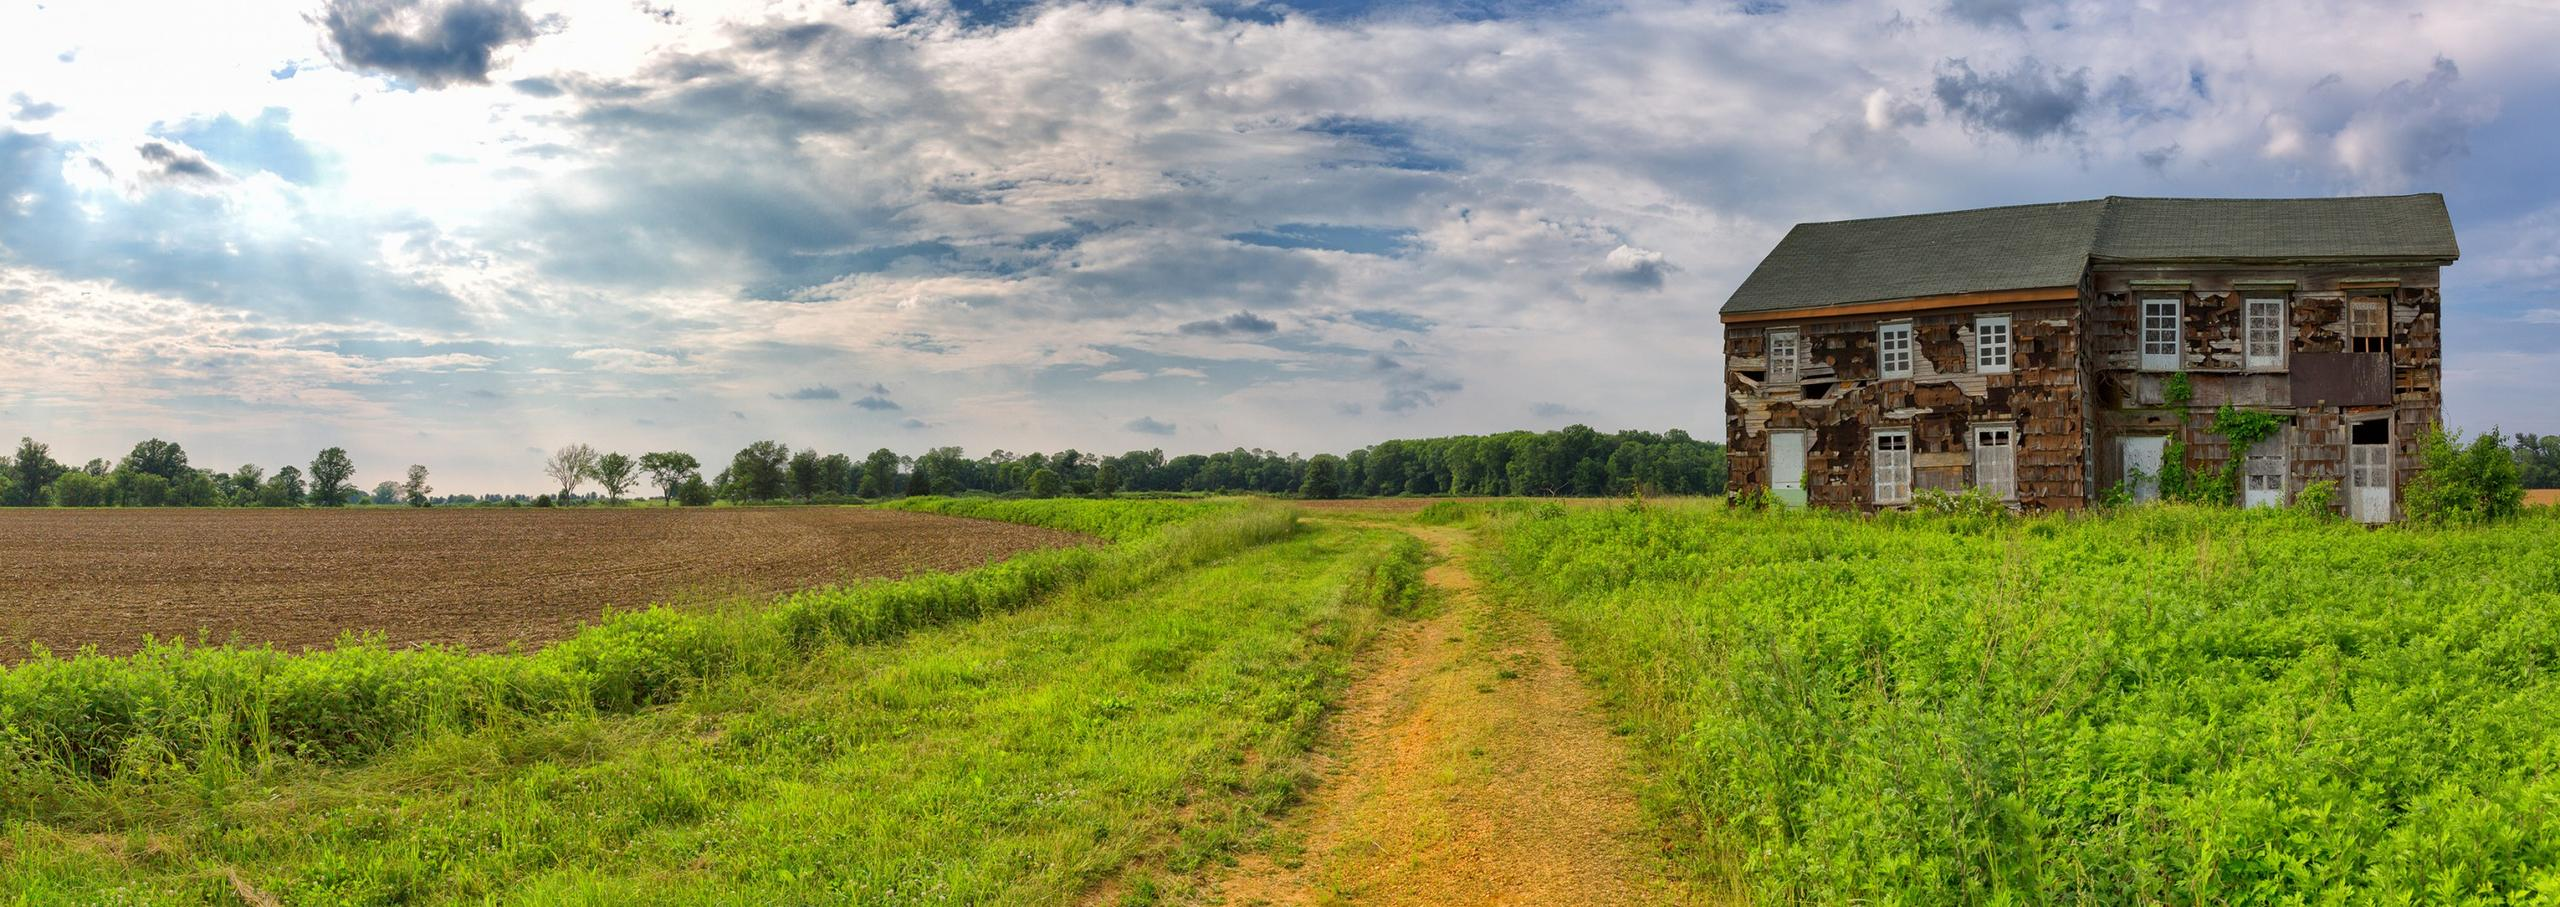 View across the Sutfin Farm towards the American artillery positions on Perrine's Hill.  (Rob Shenk - MVLA)